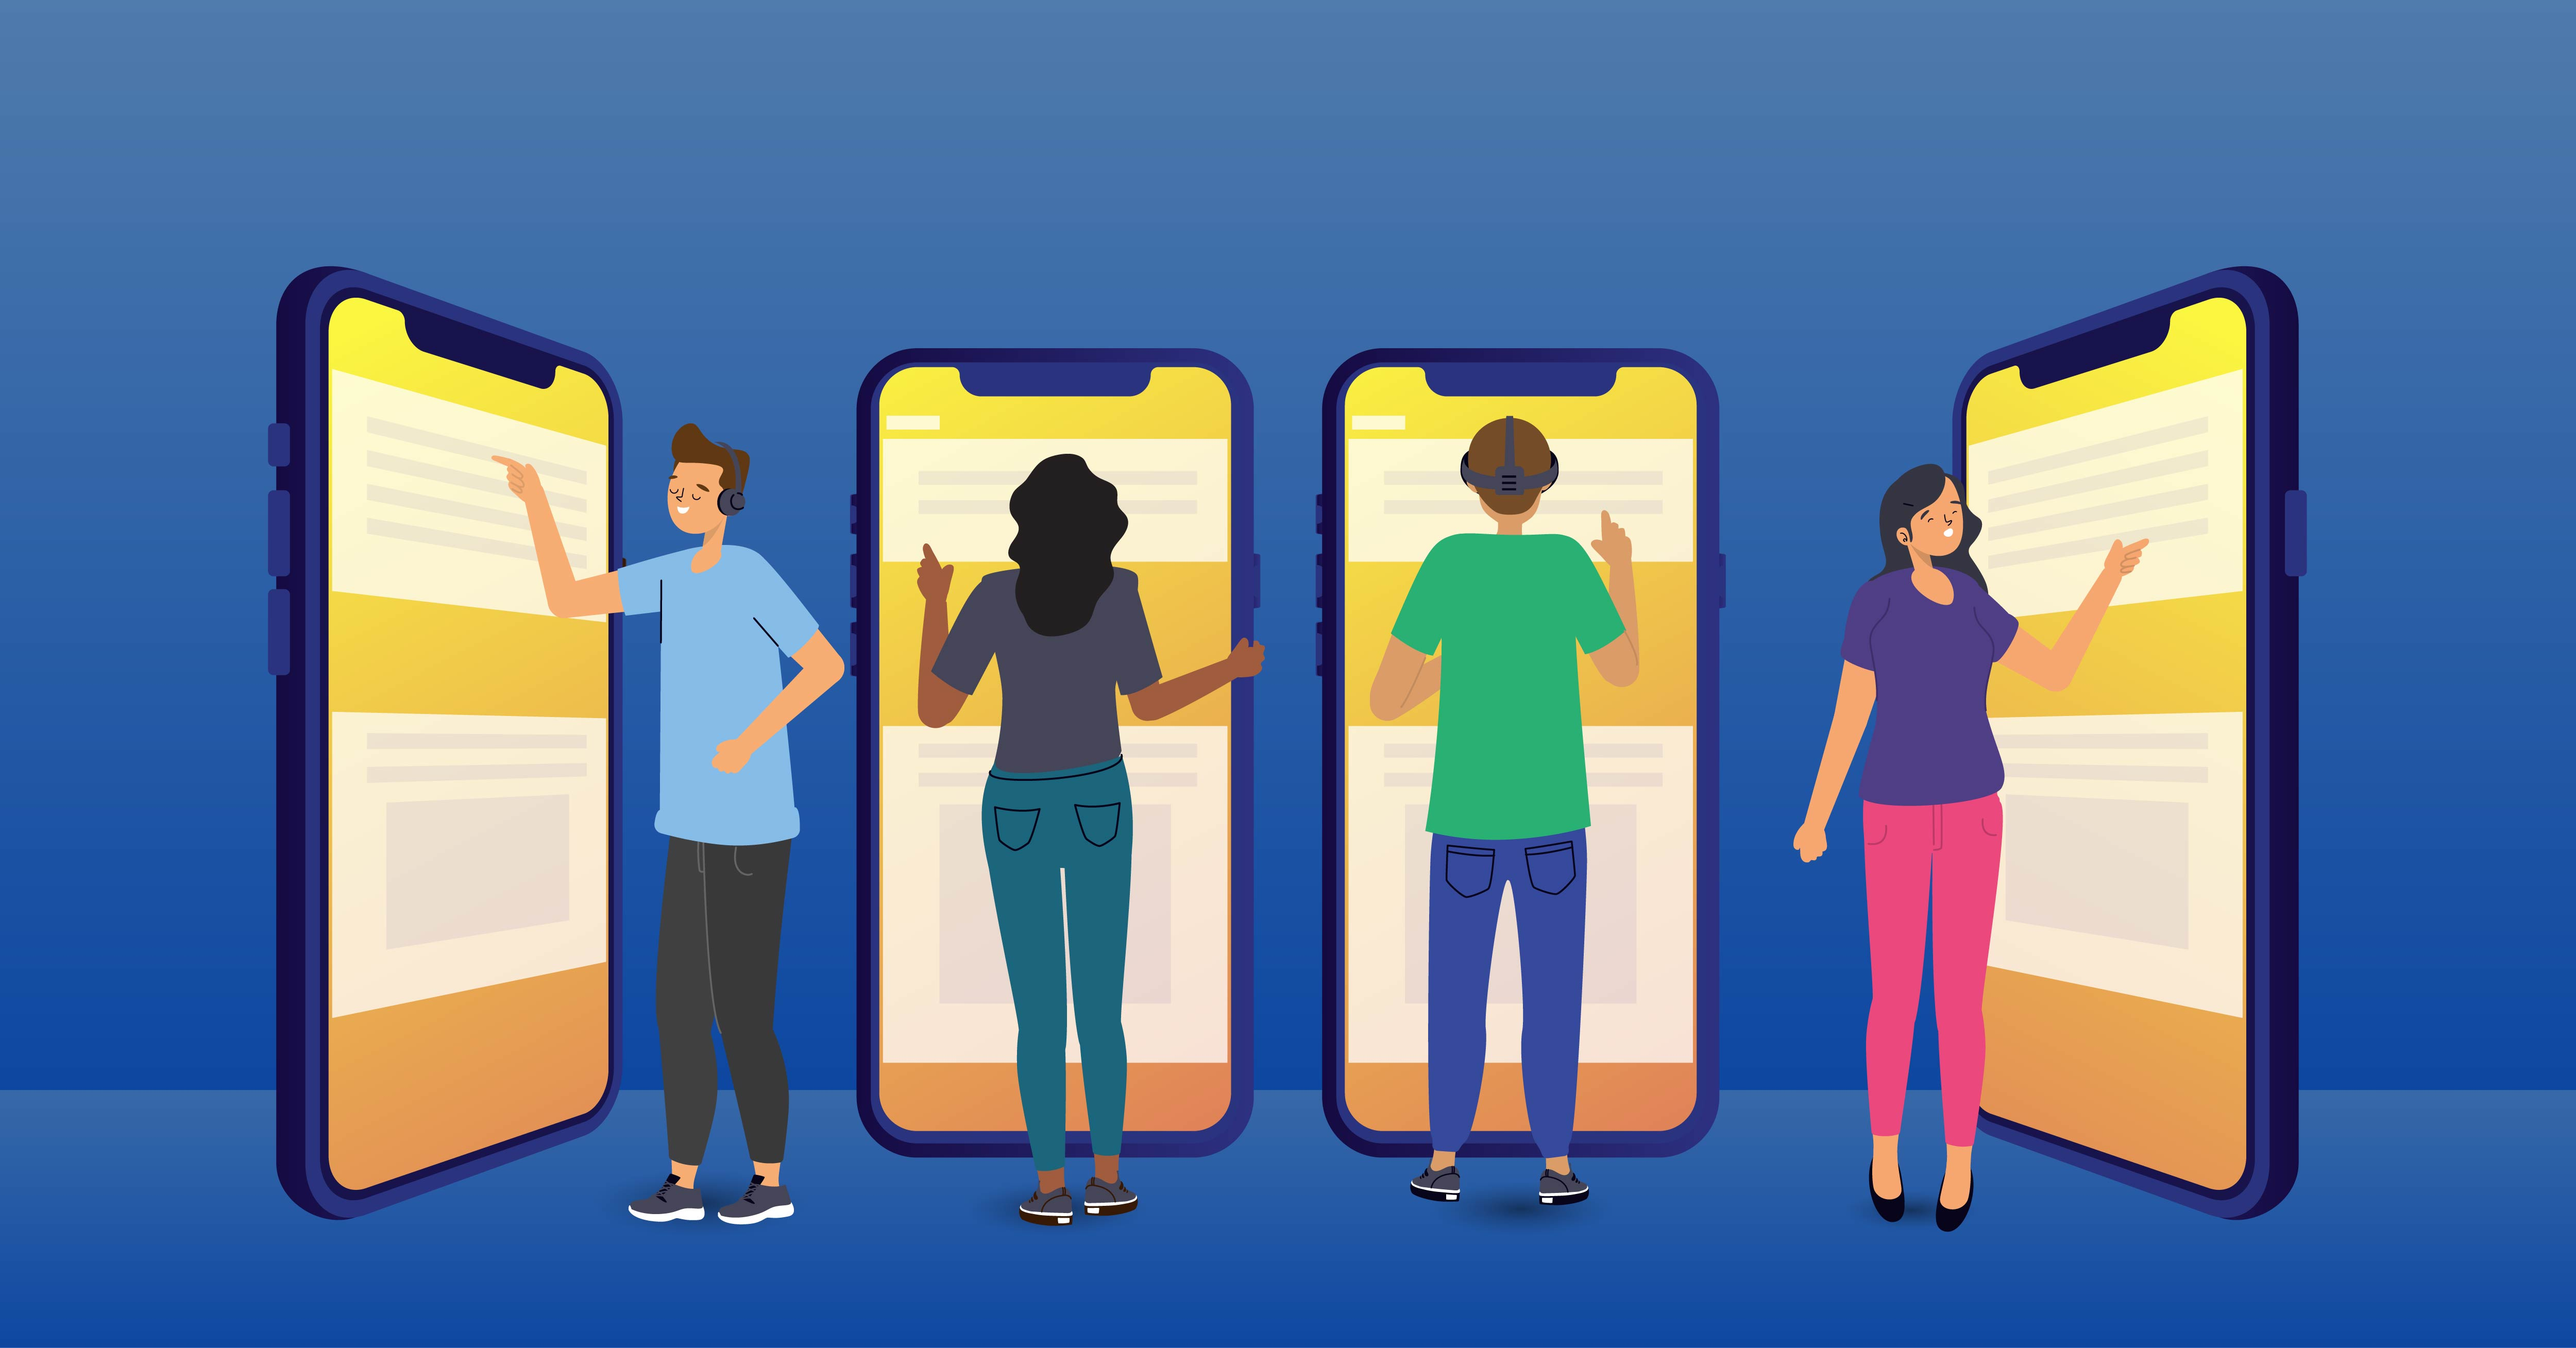 Four people engaging with human-sized smartphones.